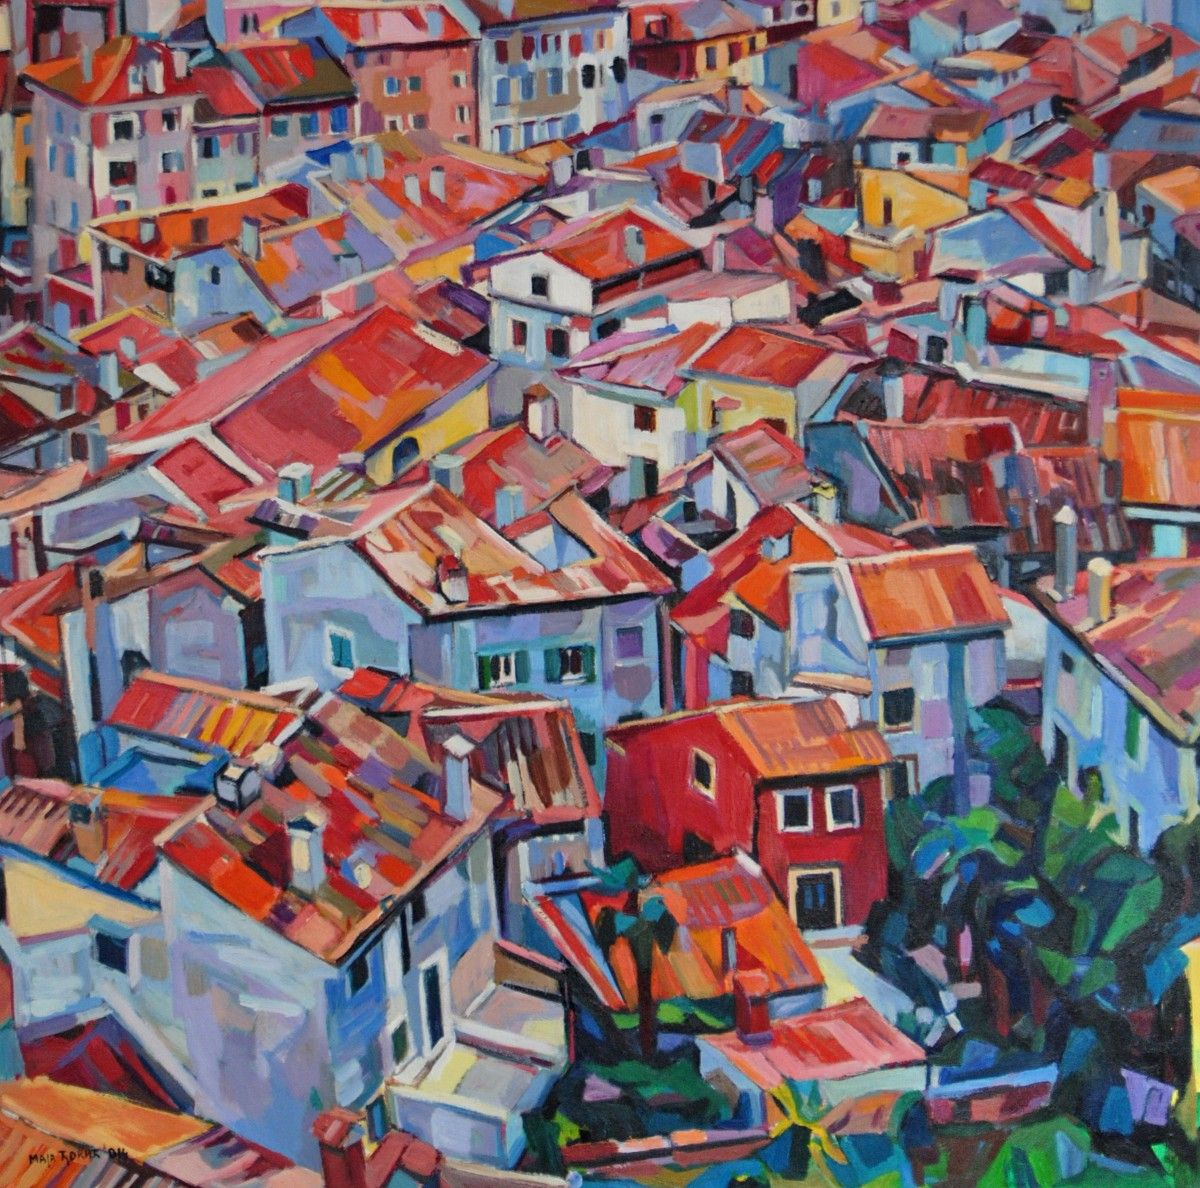 Large city with colorful streets and red roofs. Bird's-eye view.  This is a unique, one of a kind original oil painting. It is signed on the front and comes with a Certificate of Authenticity.  ...